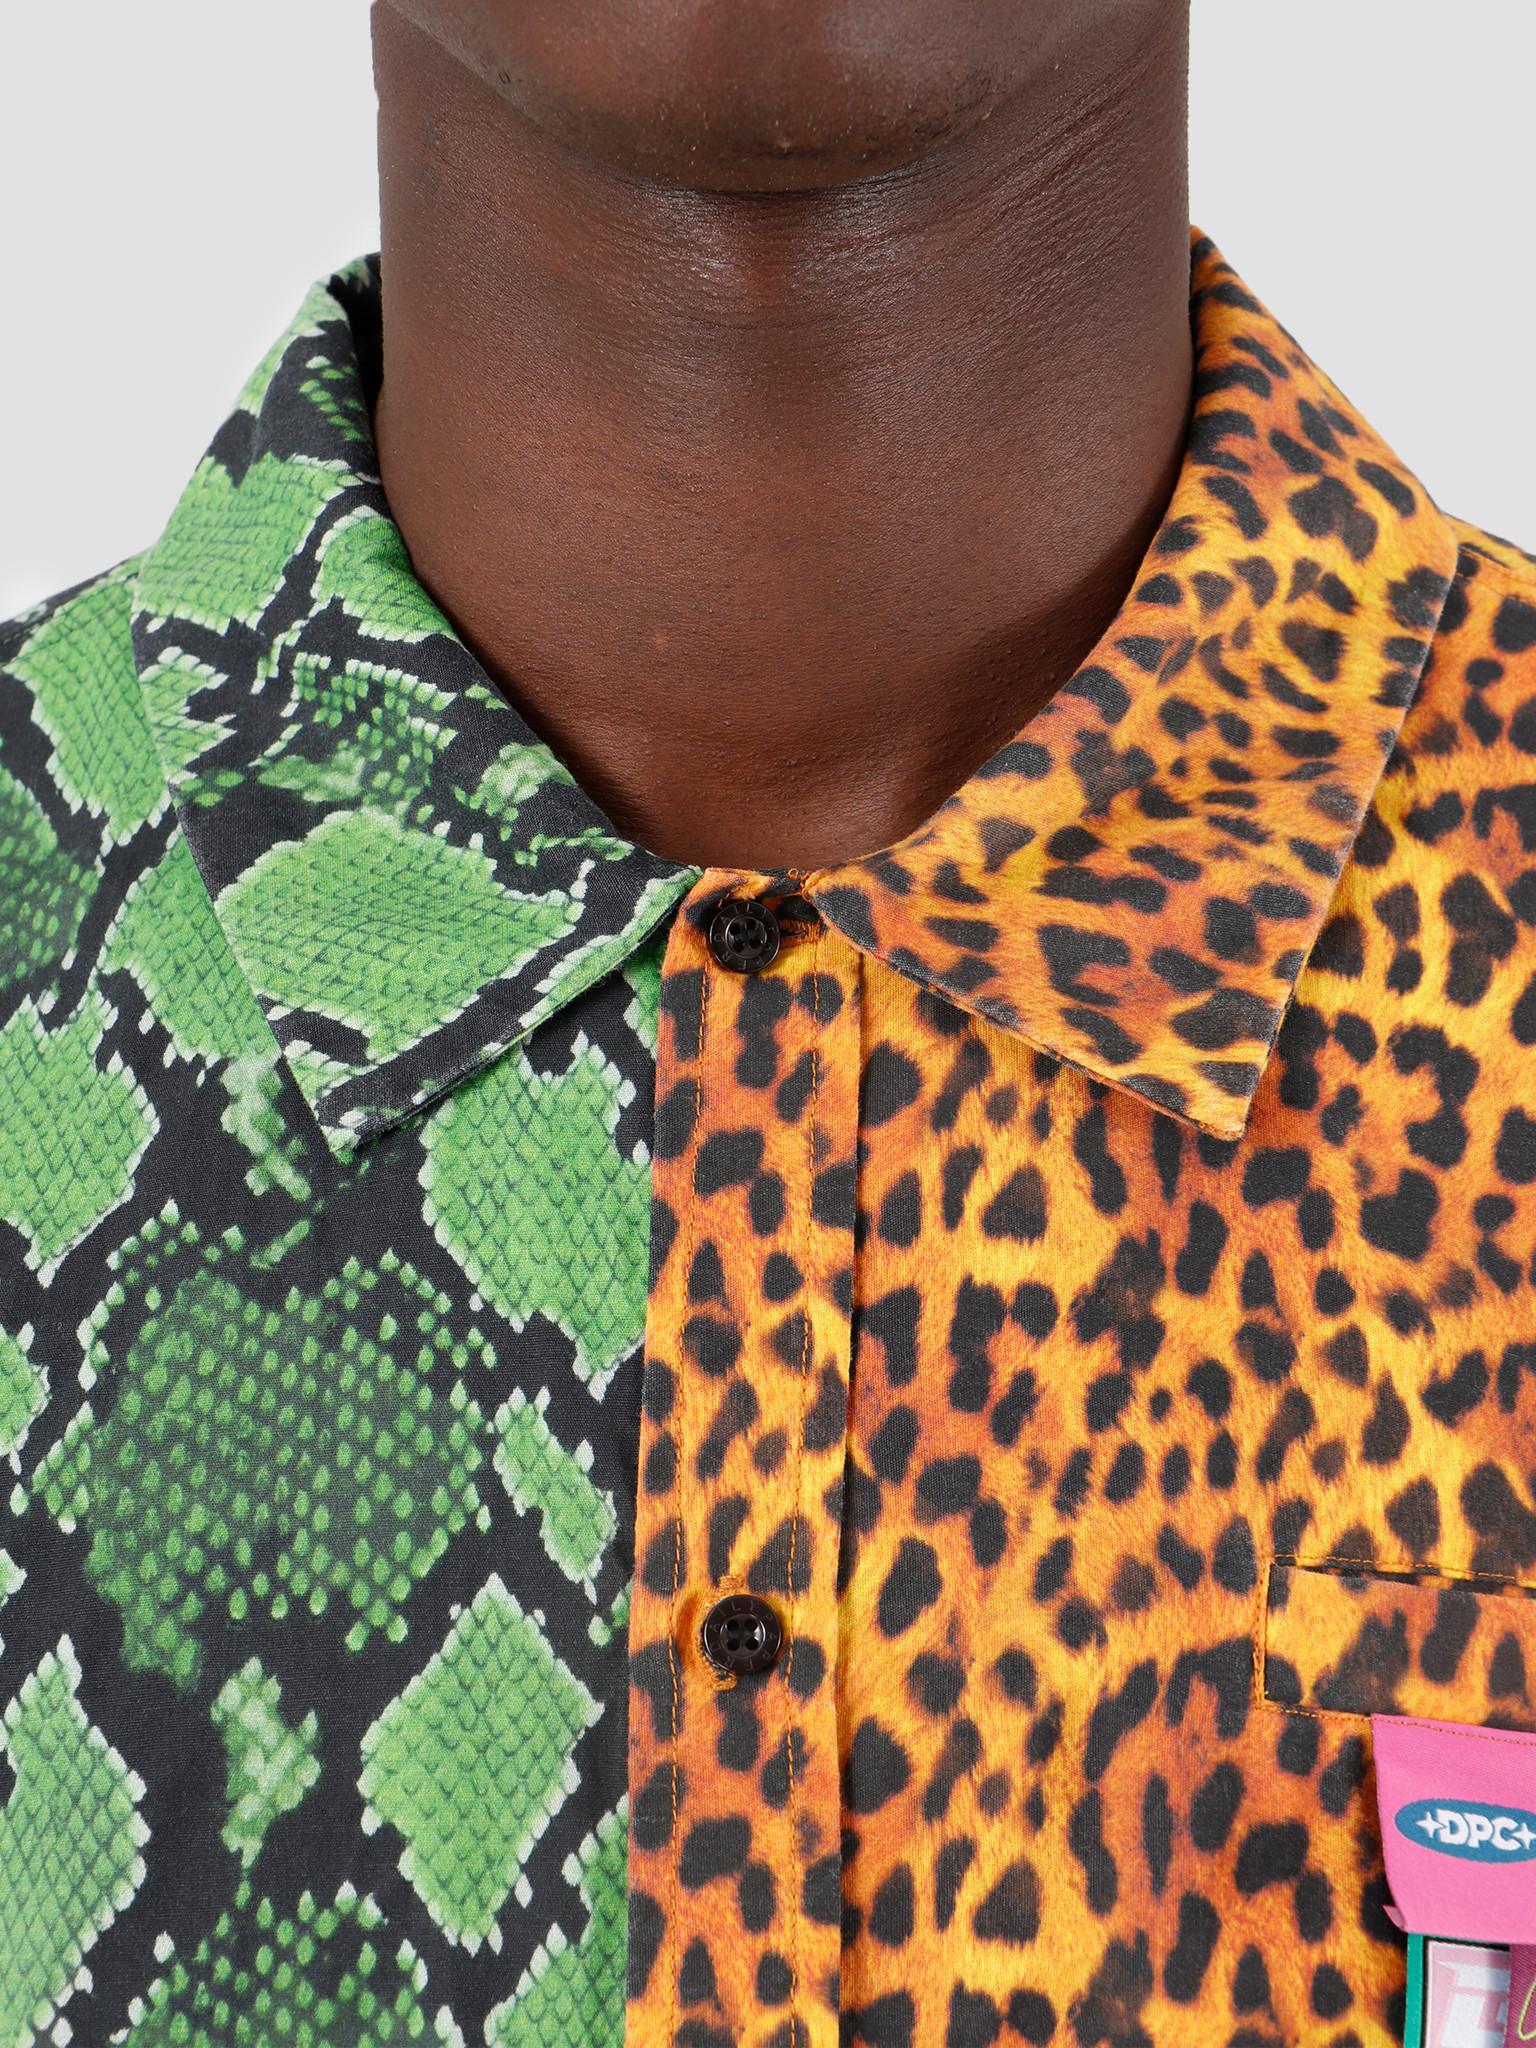 Daily Paper Daily Paper Gatik 2 Shirt Green Snake Leopard 19F1SH02-02